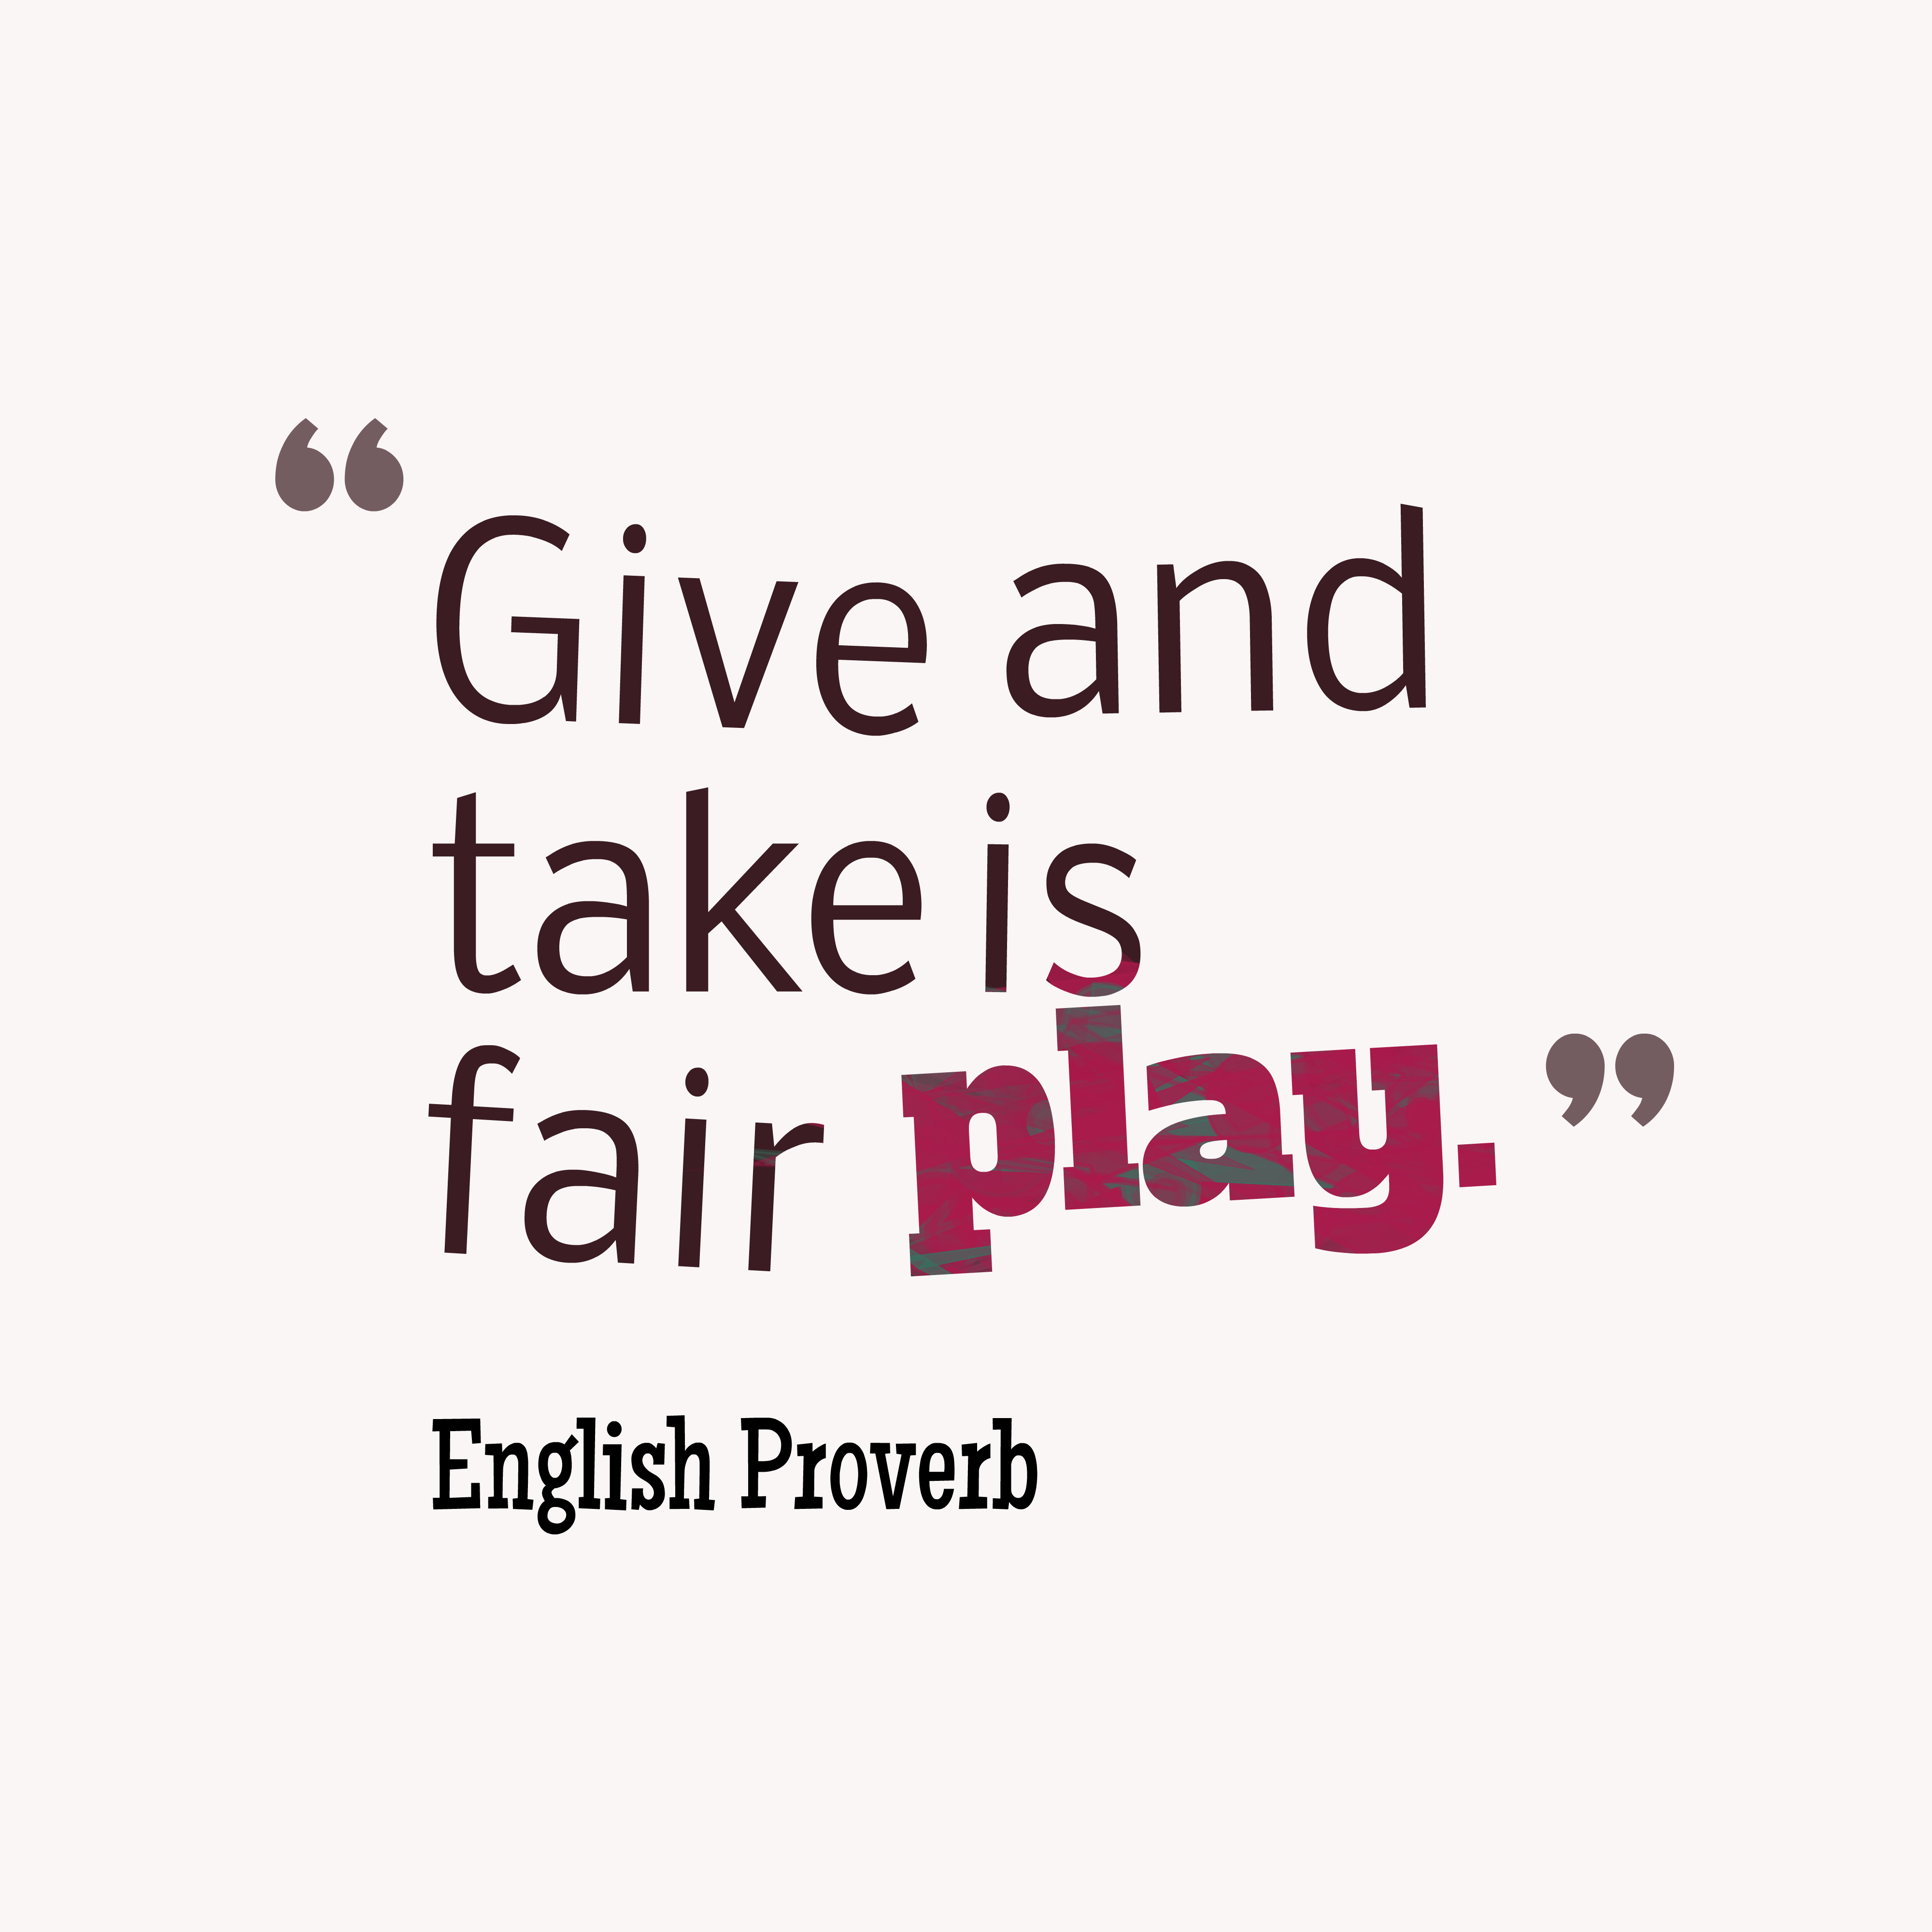 English Wisdom About Give